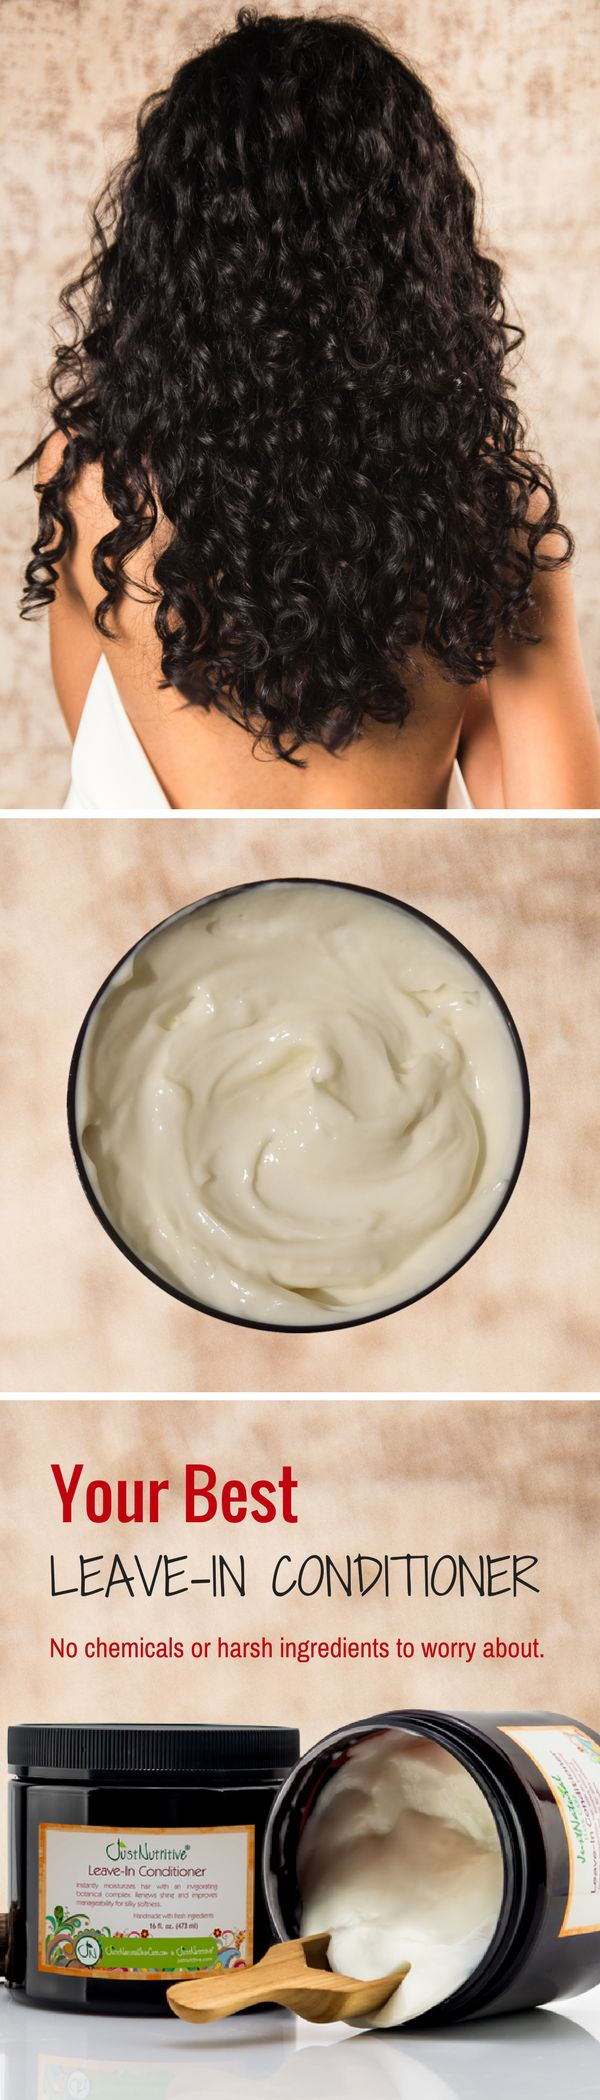 Perfect for curly, dry and/or chemical-treated hair. This creamy leave in conditioner replaces lost moisture, nutrients and protein to increase styling and manageability. With your first use, you will see and feel a noticeable improvement.